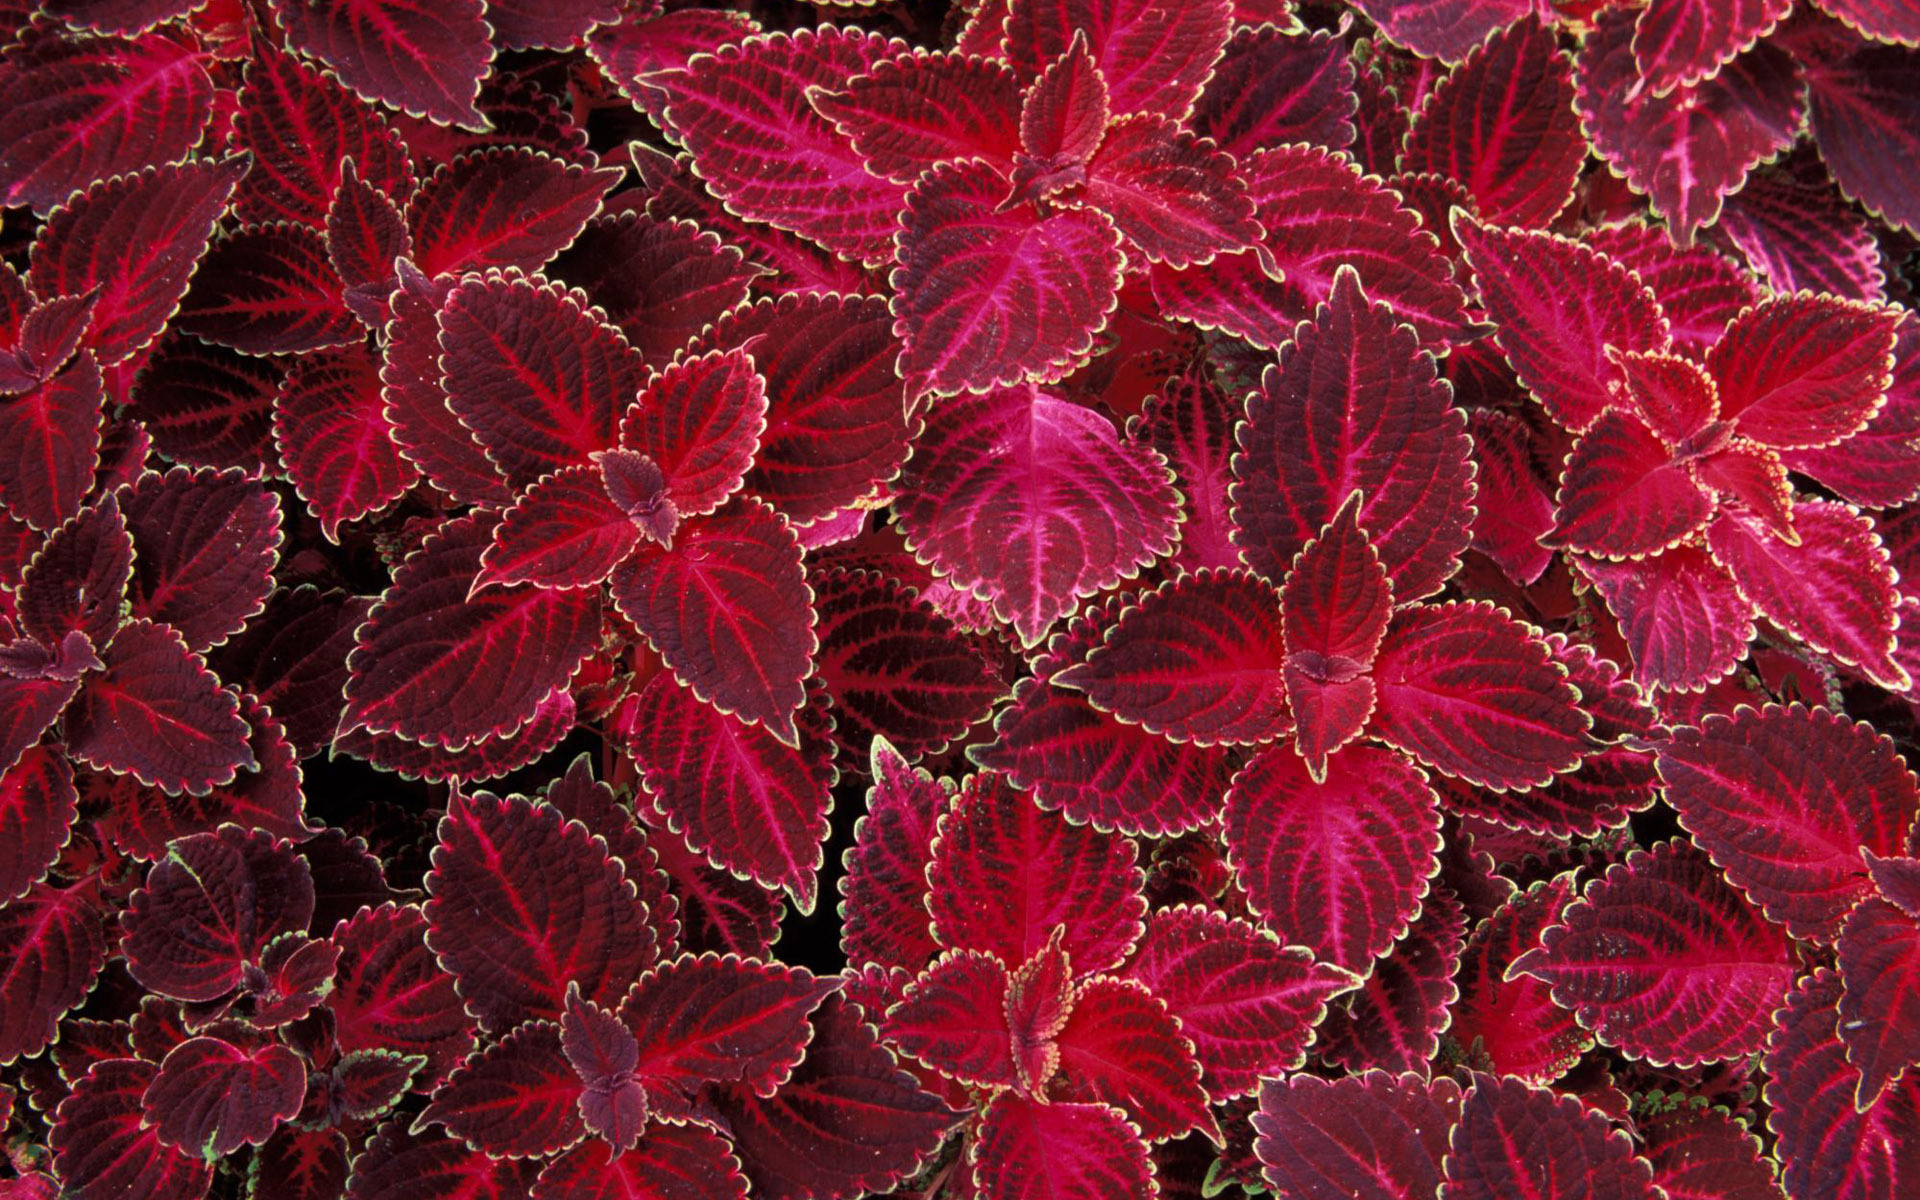 texture leaves, red foliage, download photo